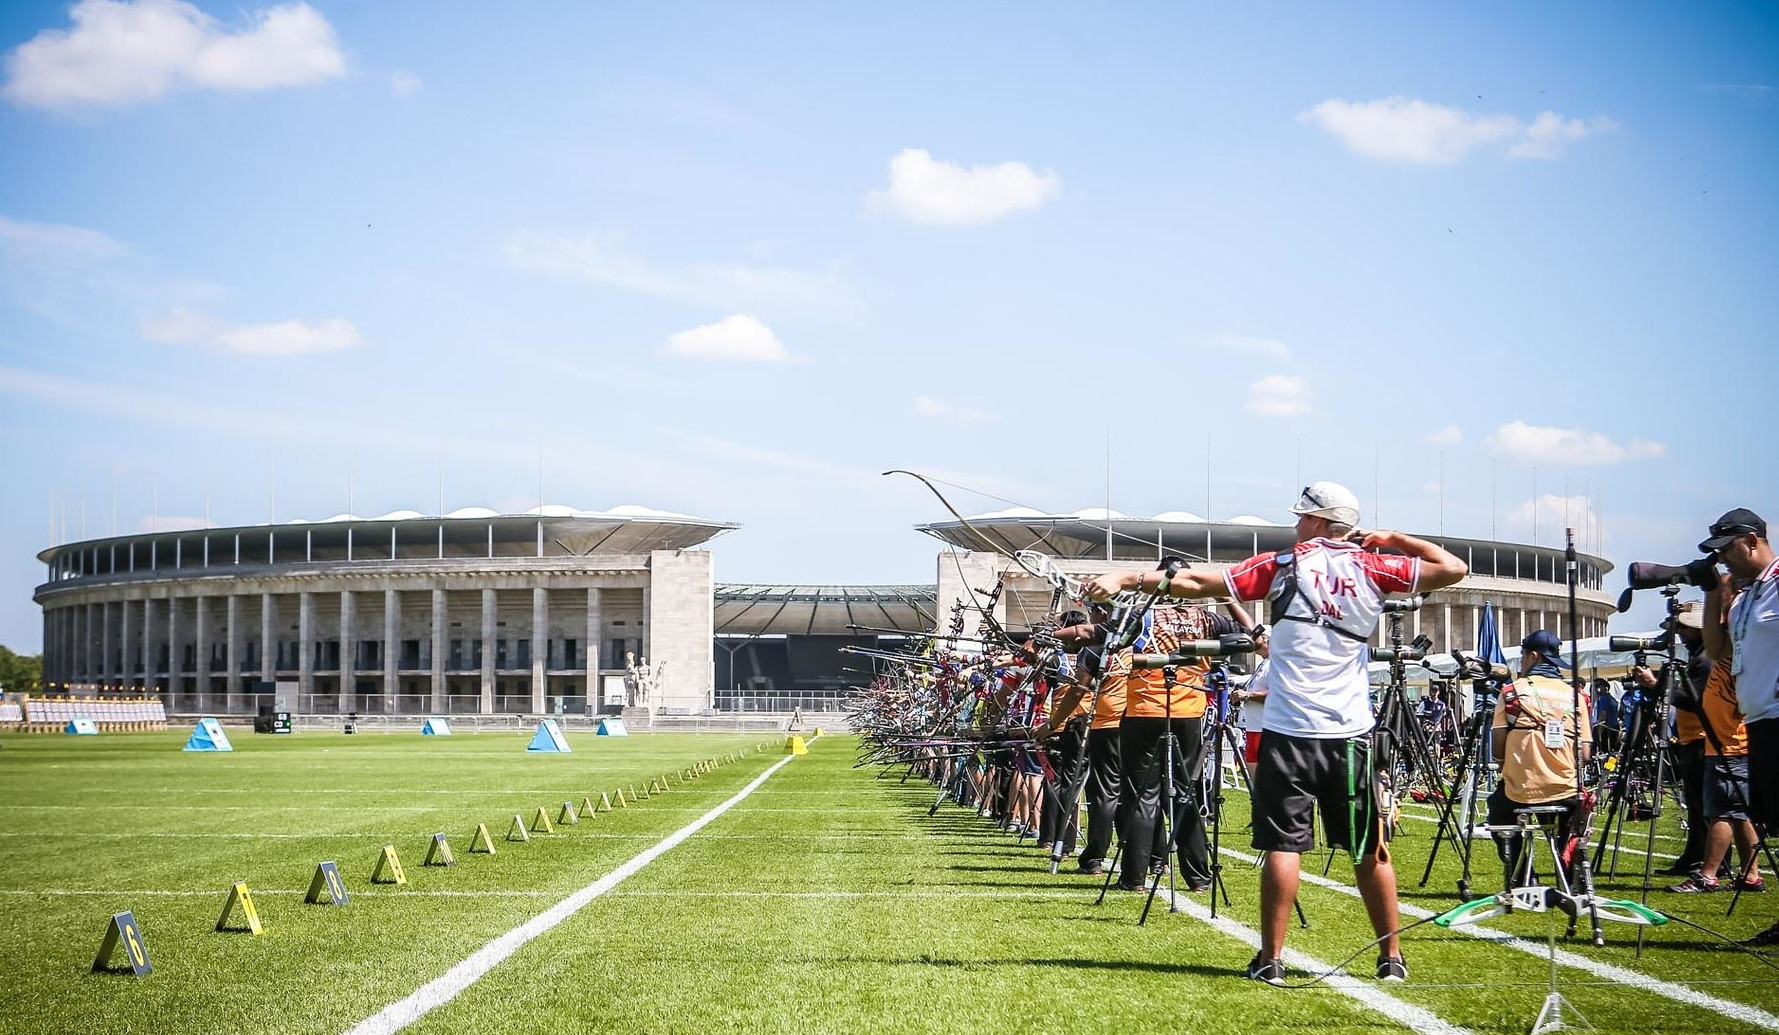 Archery World Cup Final spots on the line in Berlin